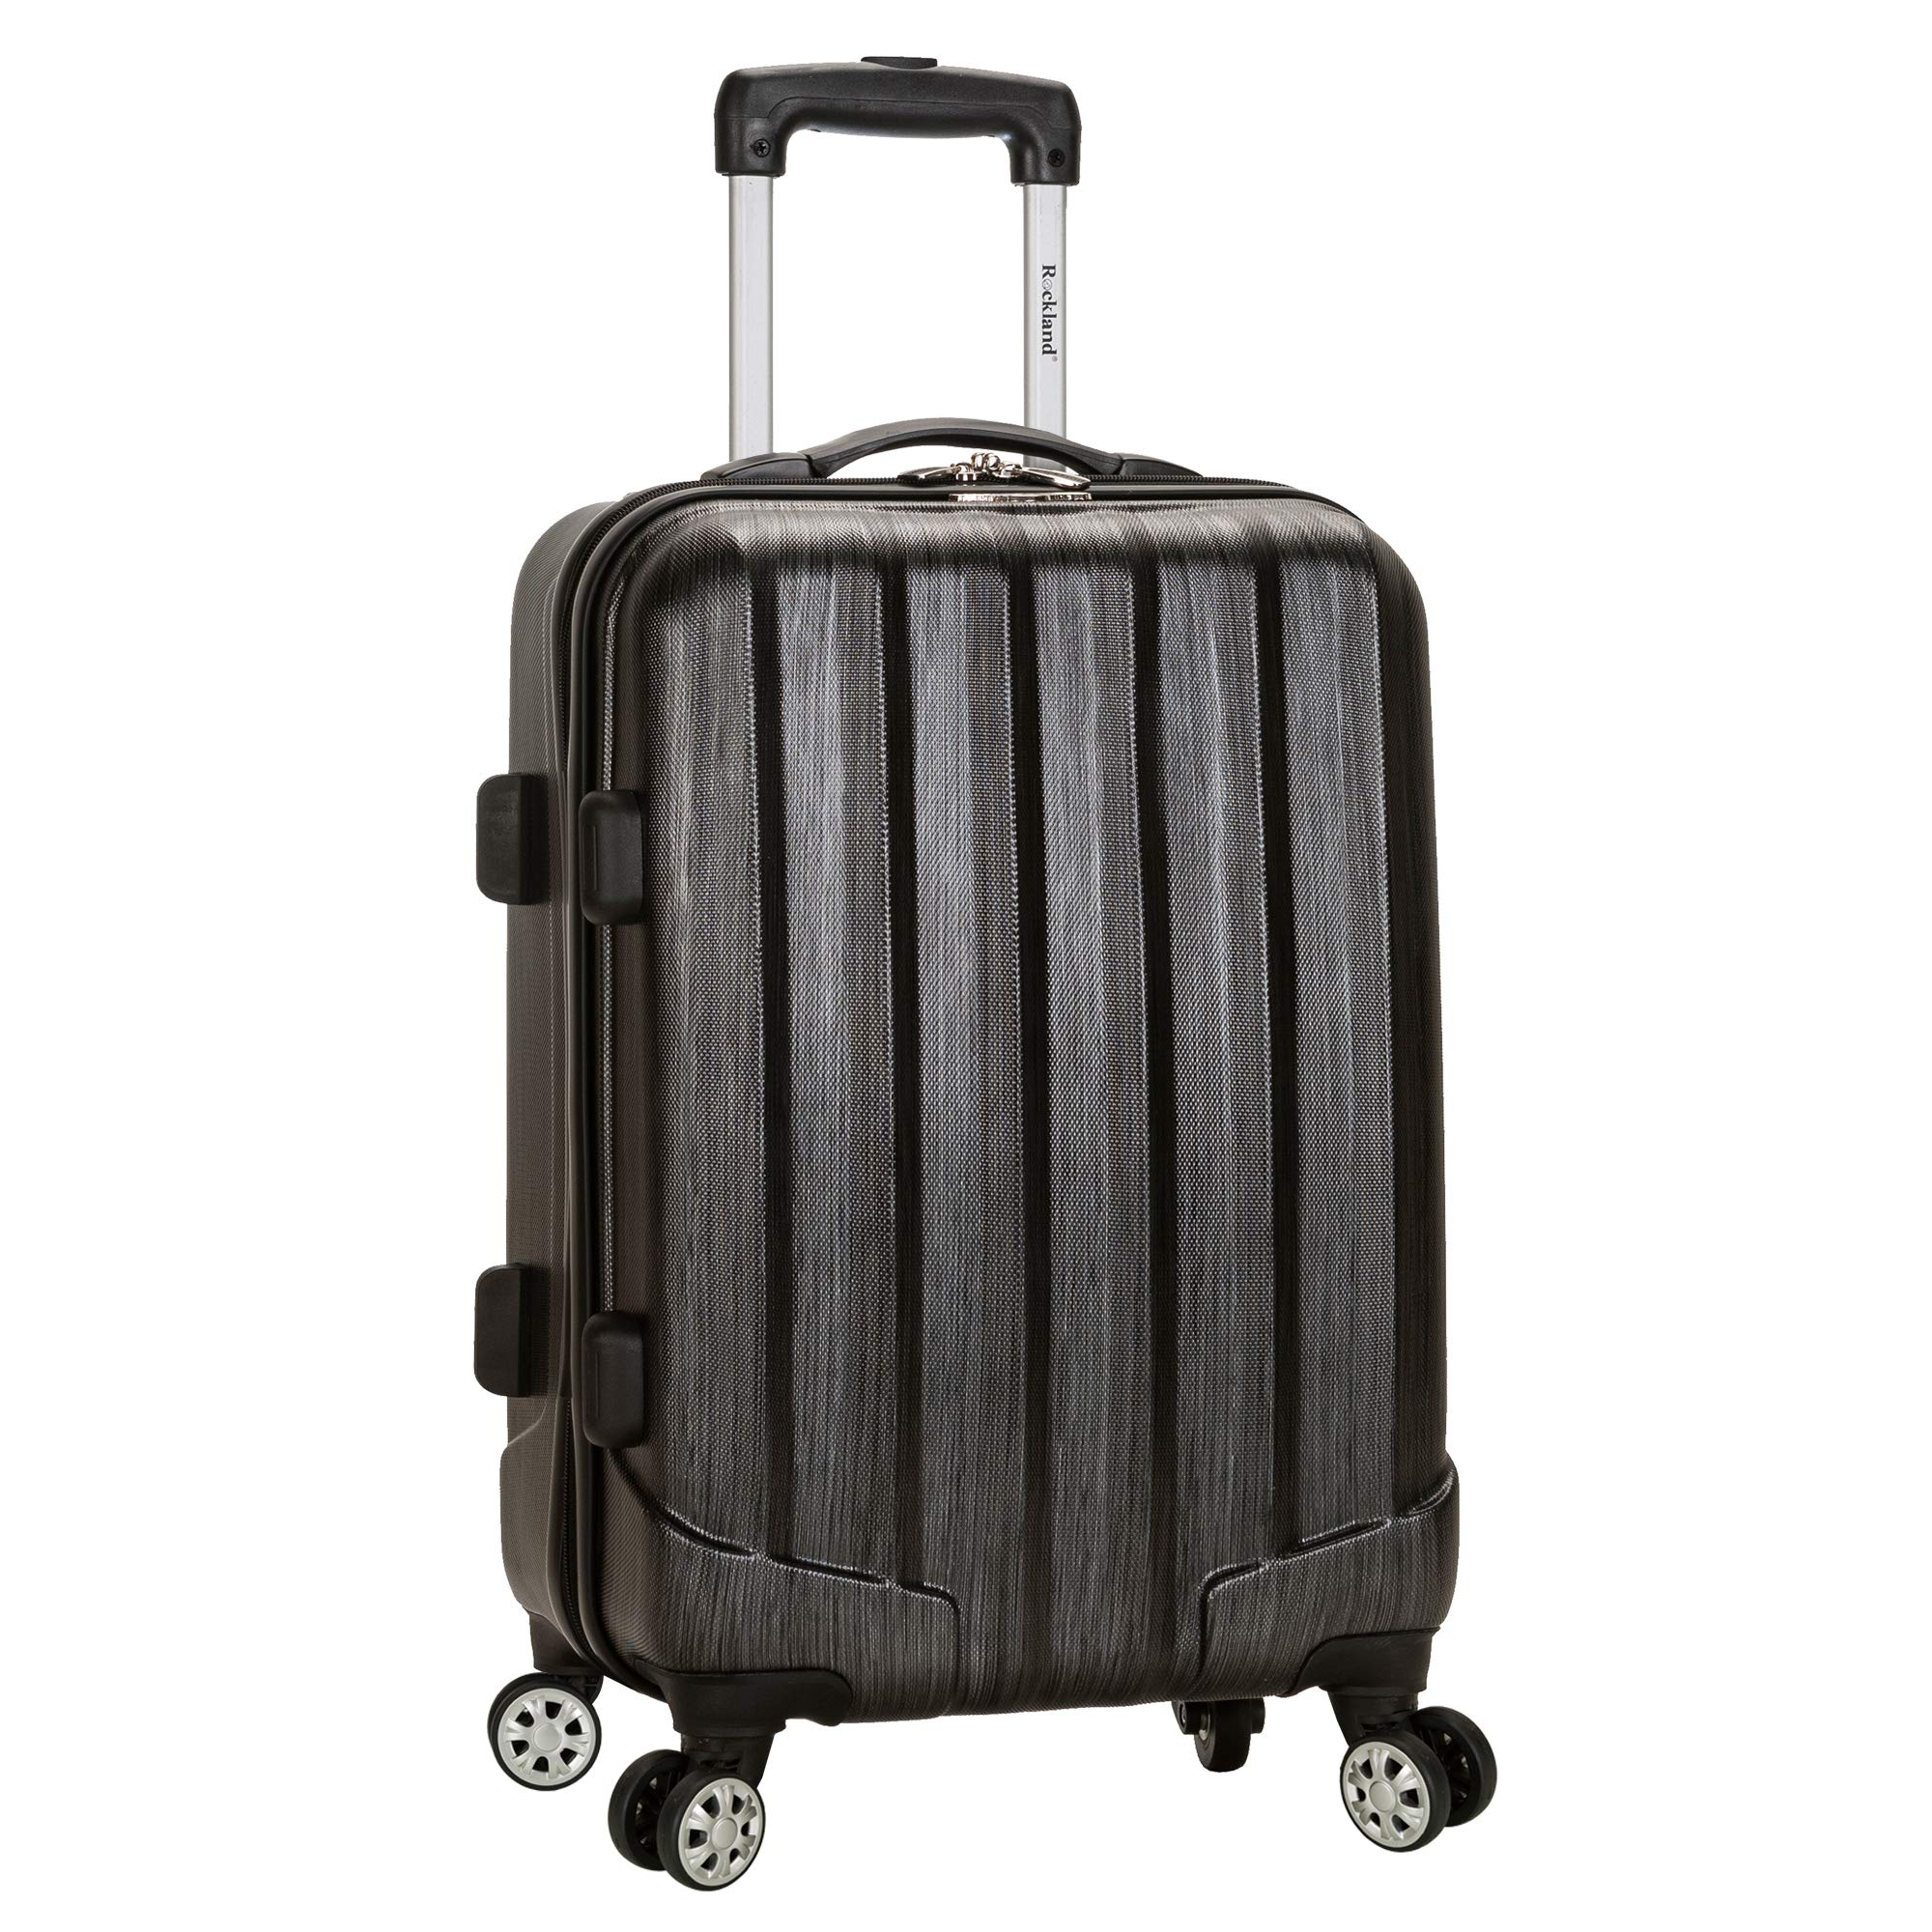 Rockland Luggage Melbourne 20 Inch Expandable Carry